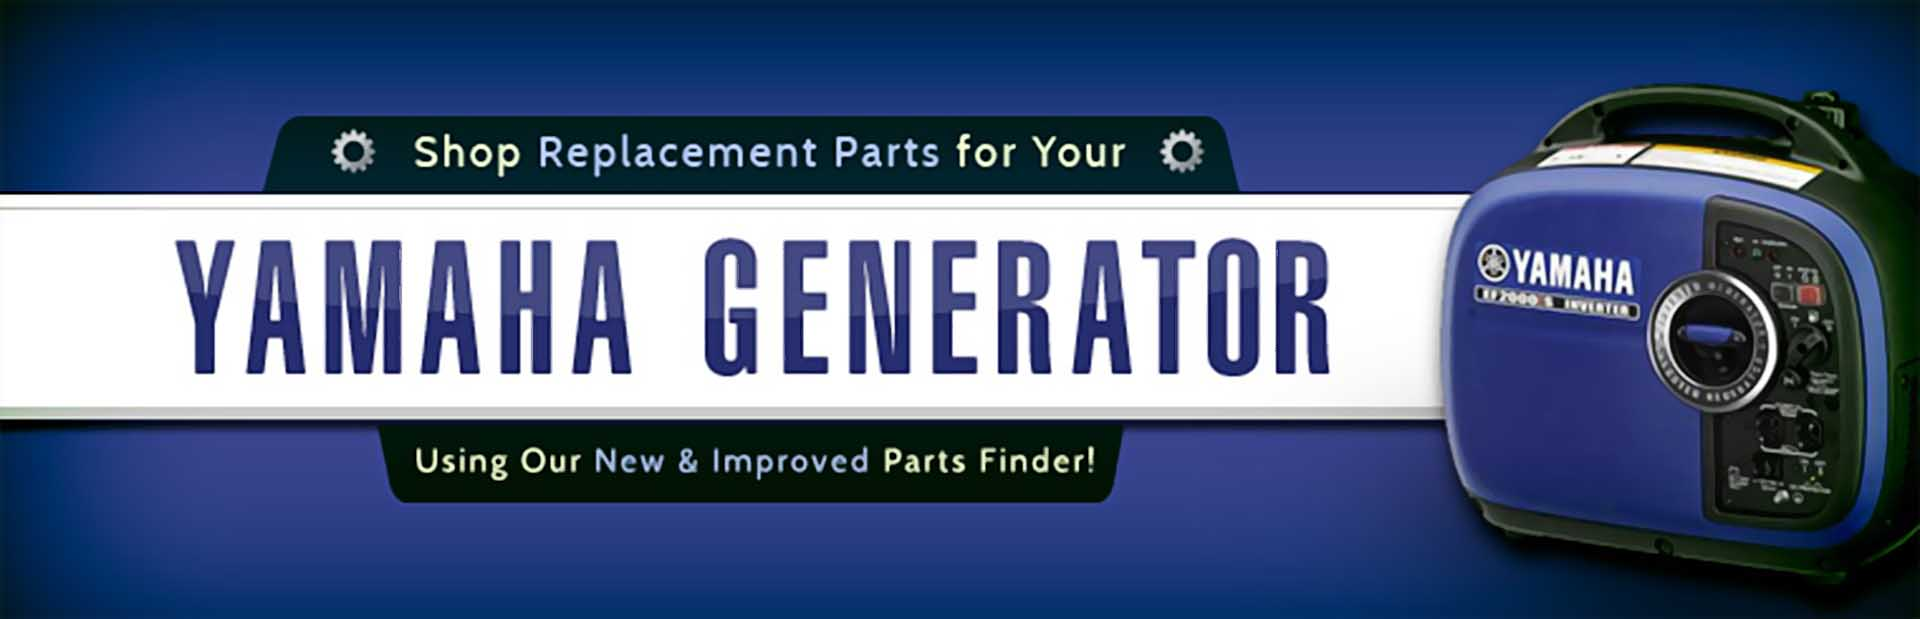 Shop Replacement Parts For Your Yamaha Generator Using Our New And Improved Finder